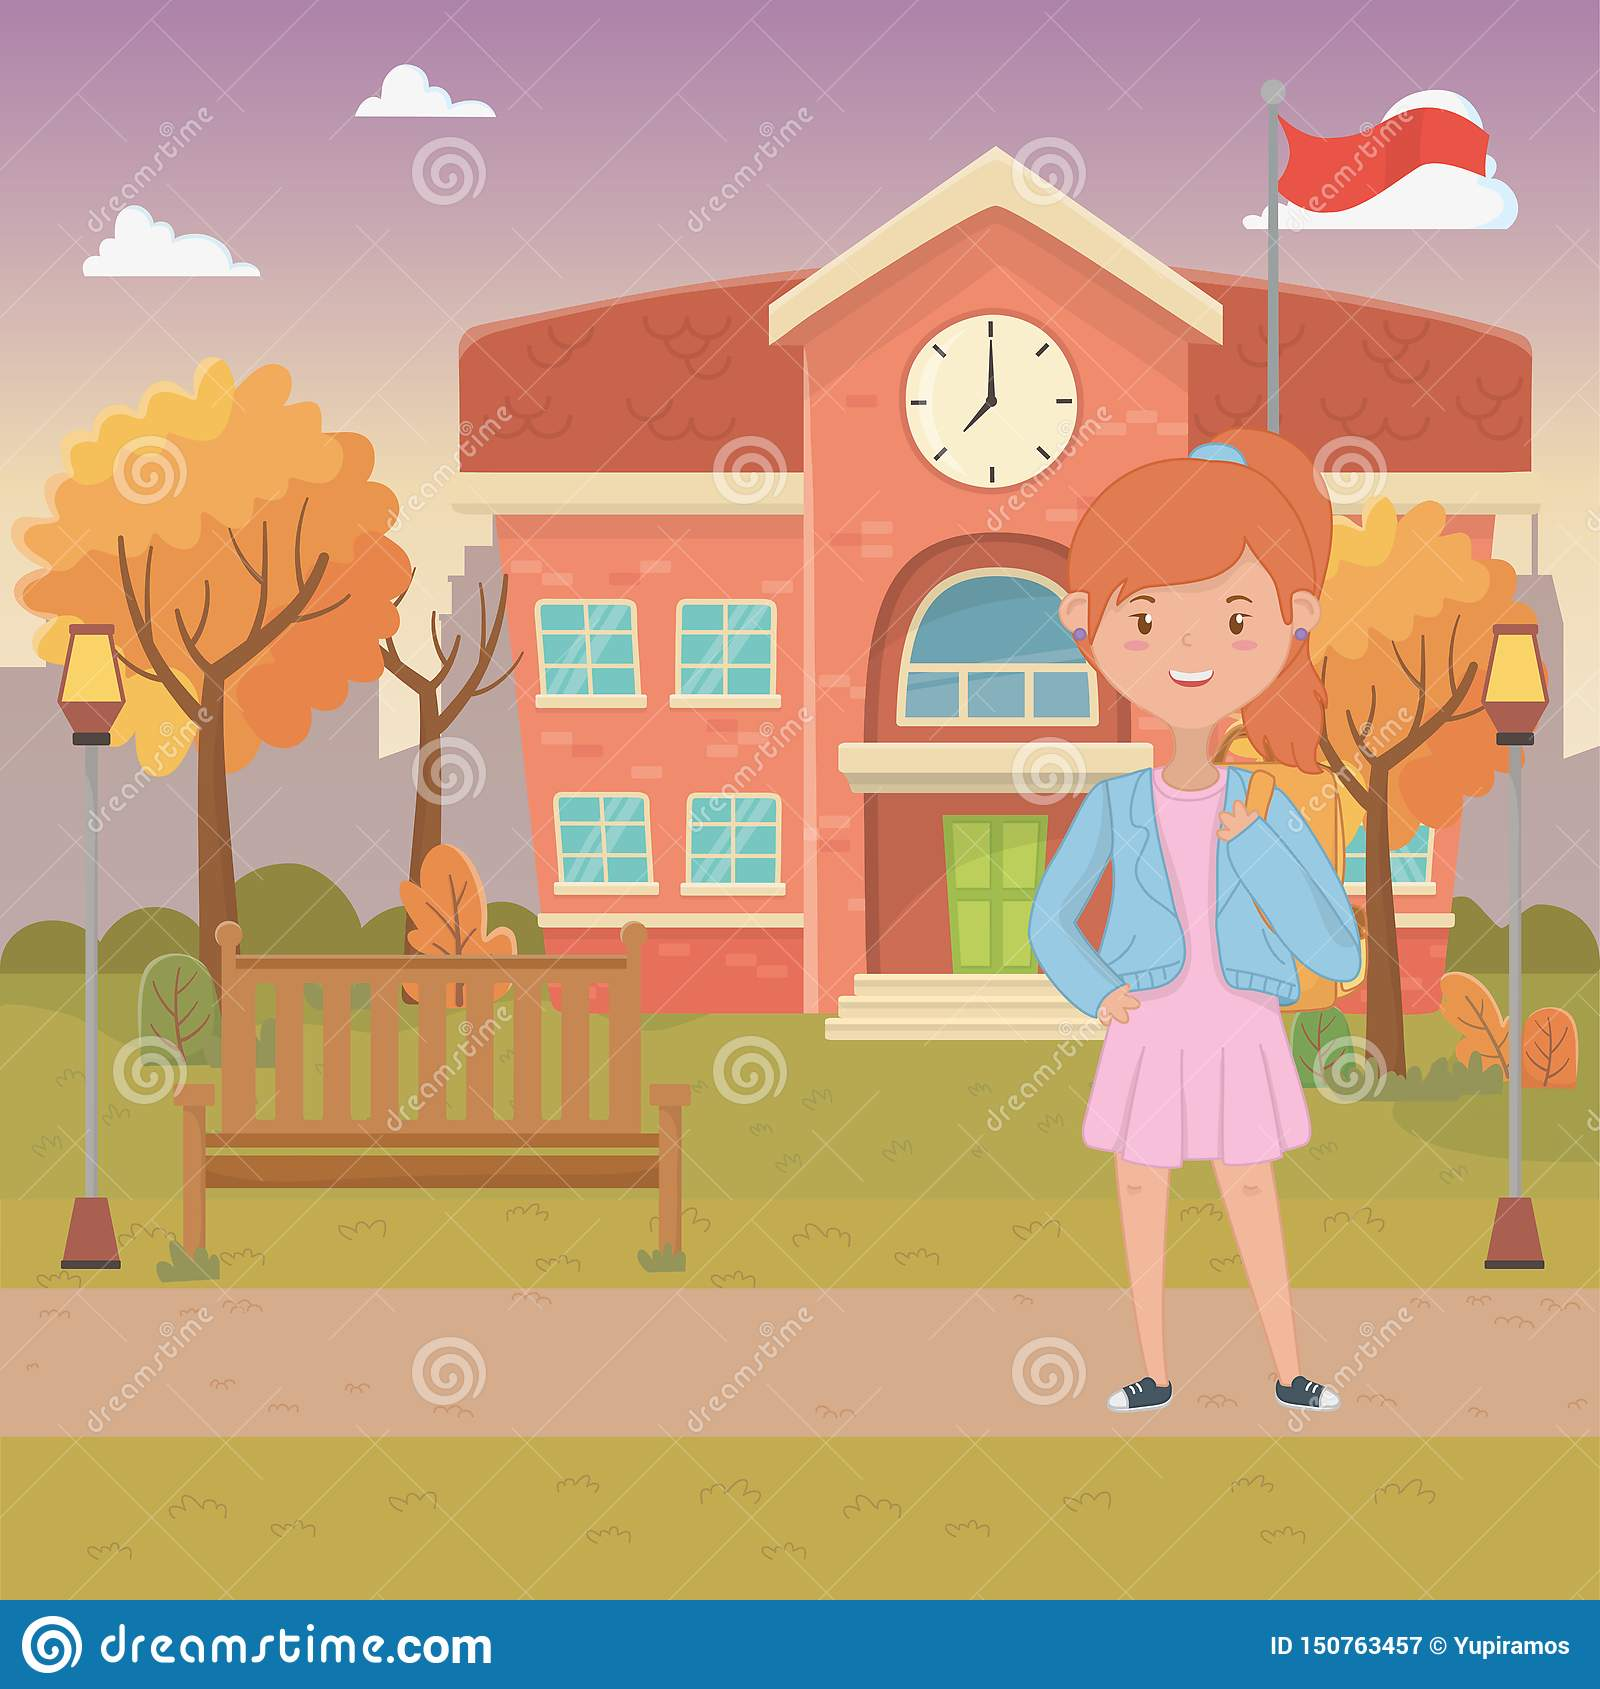 Girl cartoon of school design